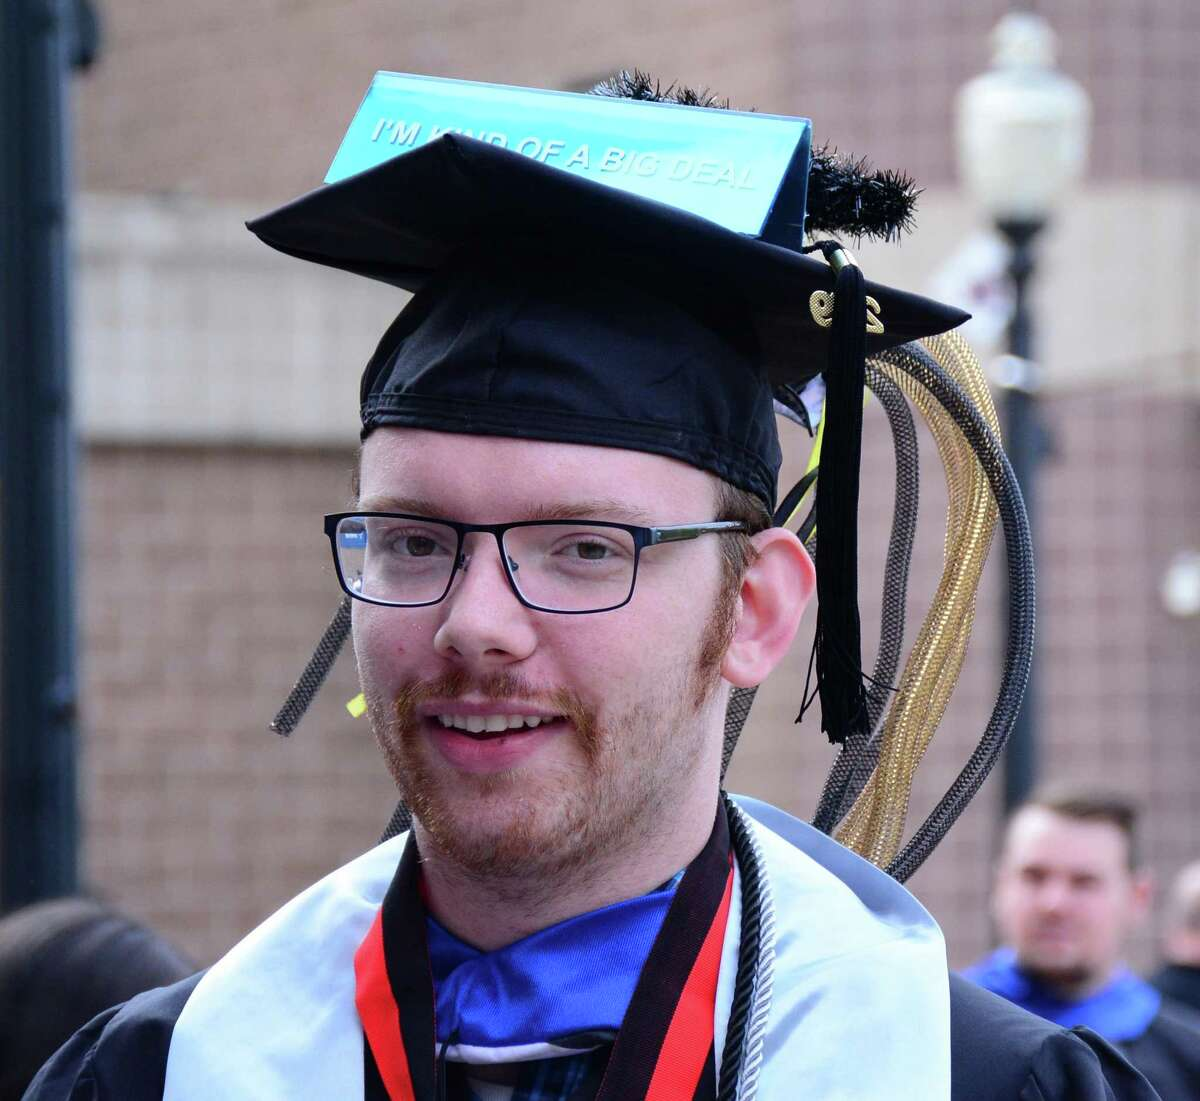 James Gillis, 21, from Brookfield waits in line during Western Connecticut State Universities commencement ceremony on Sunday May 19, 2019 at t1he Webster Bank Arena in Bridgeport Connecticut.